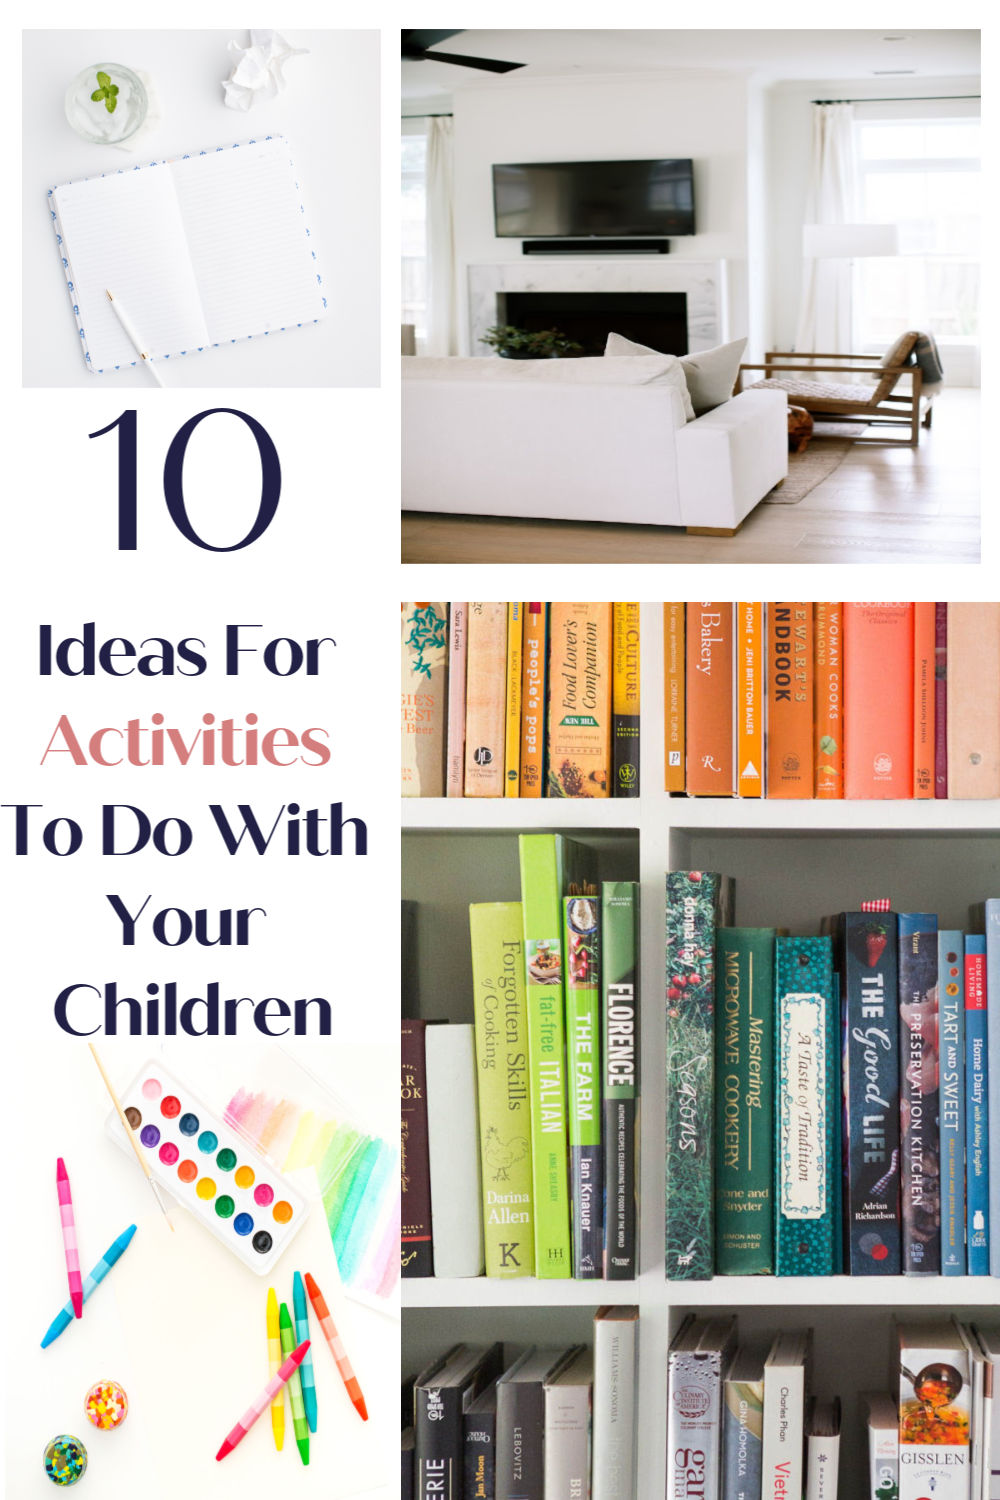 10 Ideas for activities to do with your children while at home.